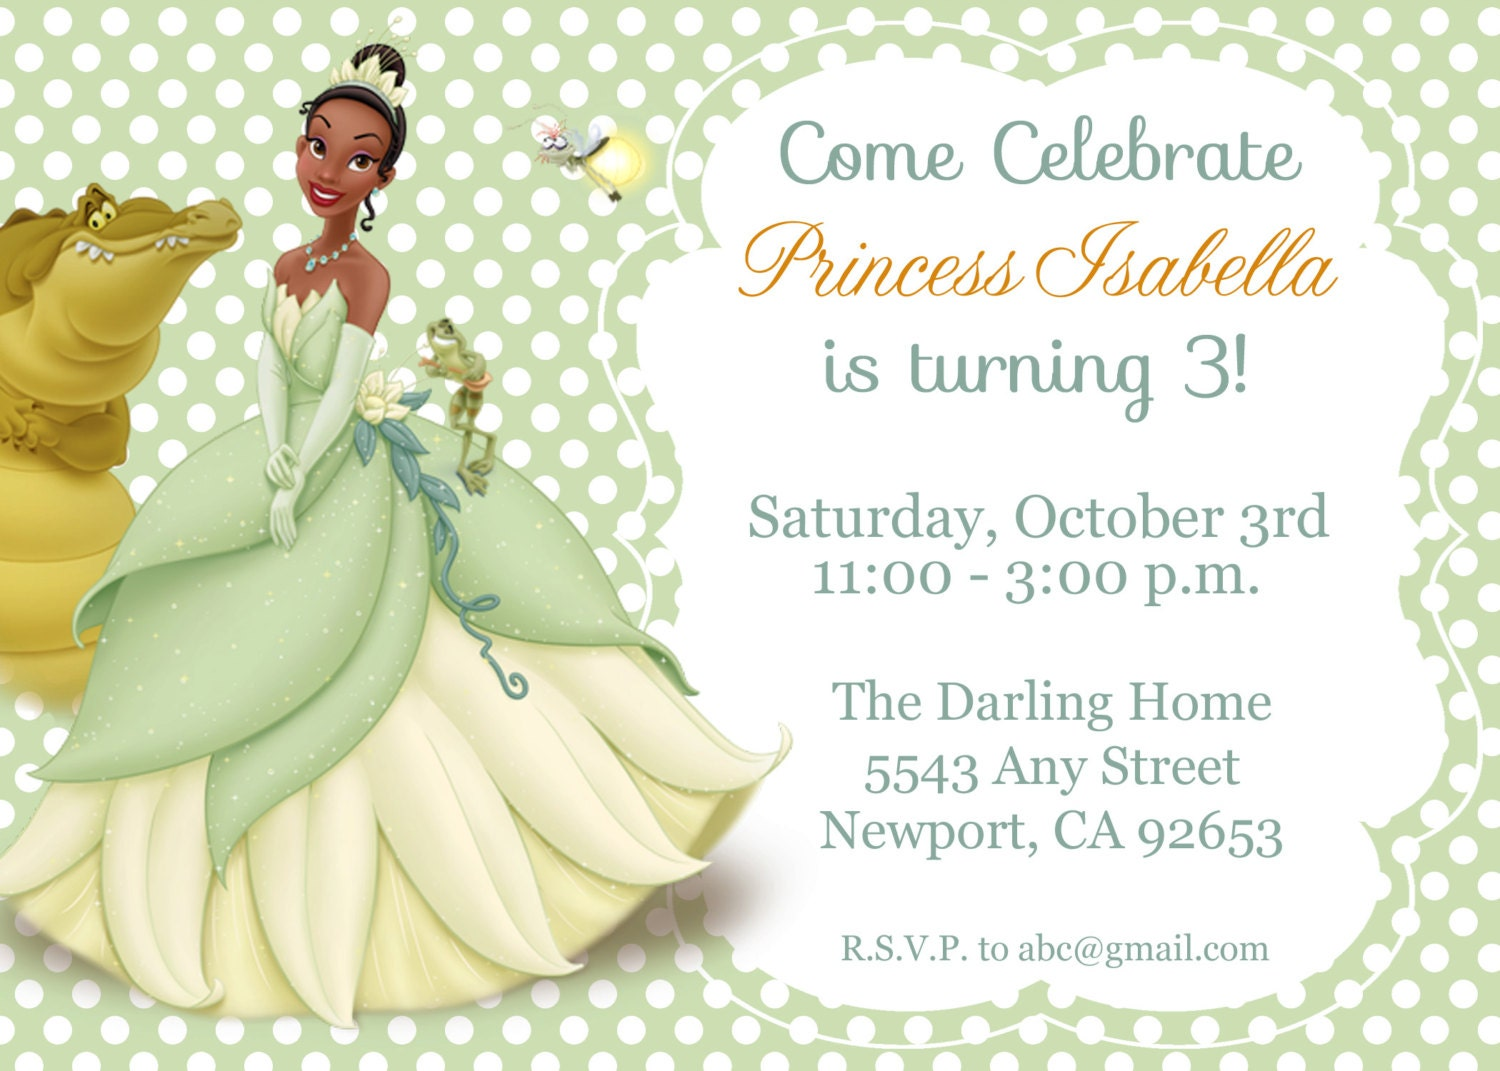 Princess the Frog Invitation Tiana Disney Princess – Princess Tiana Party Invitations